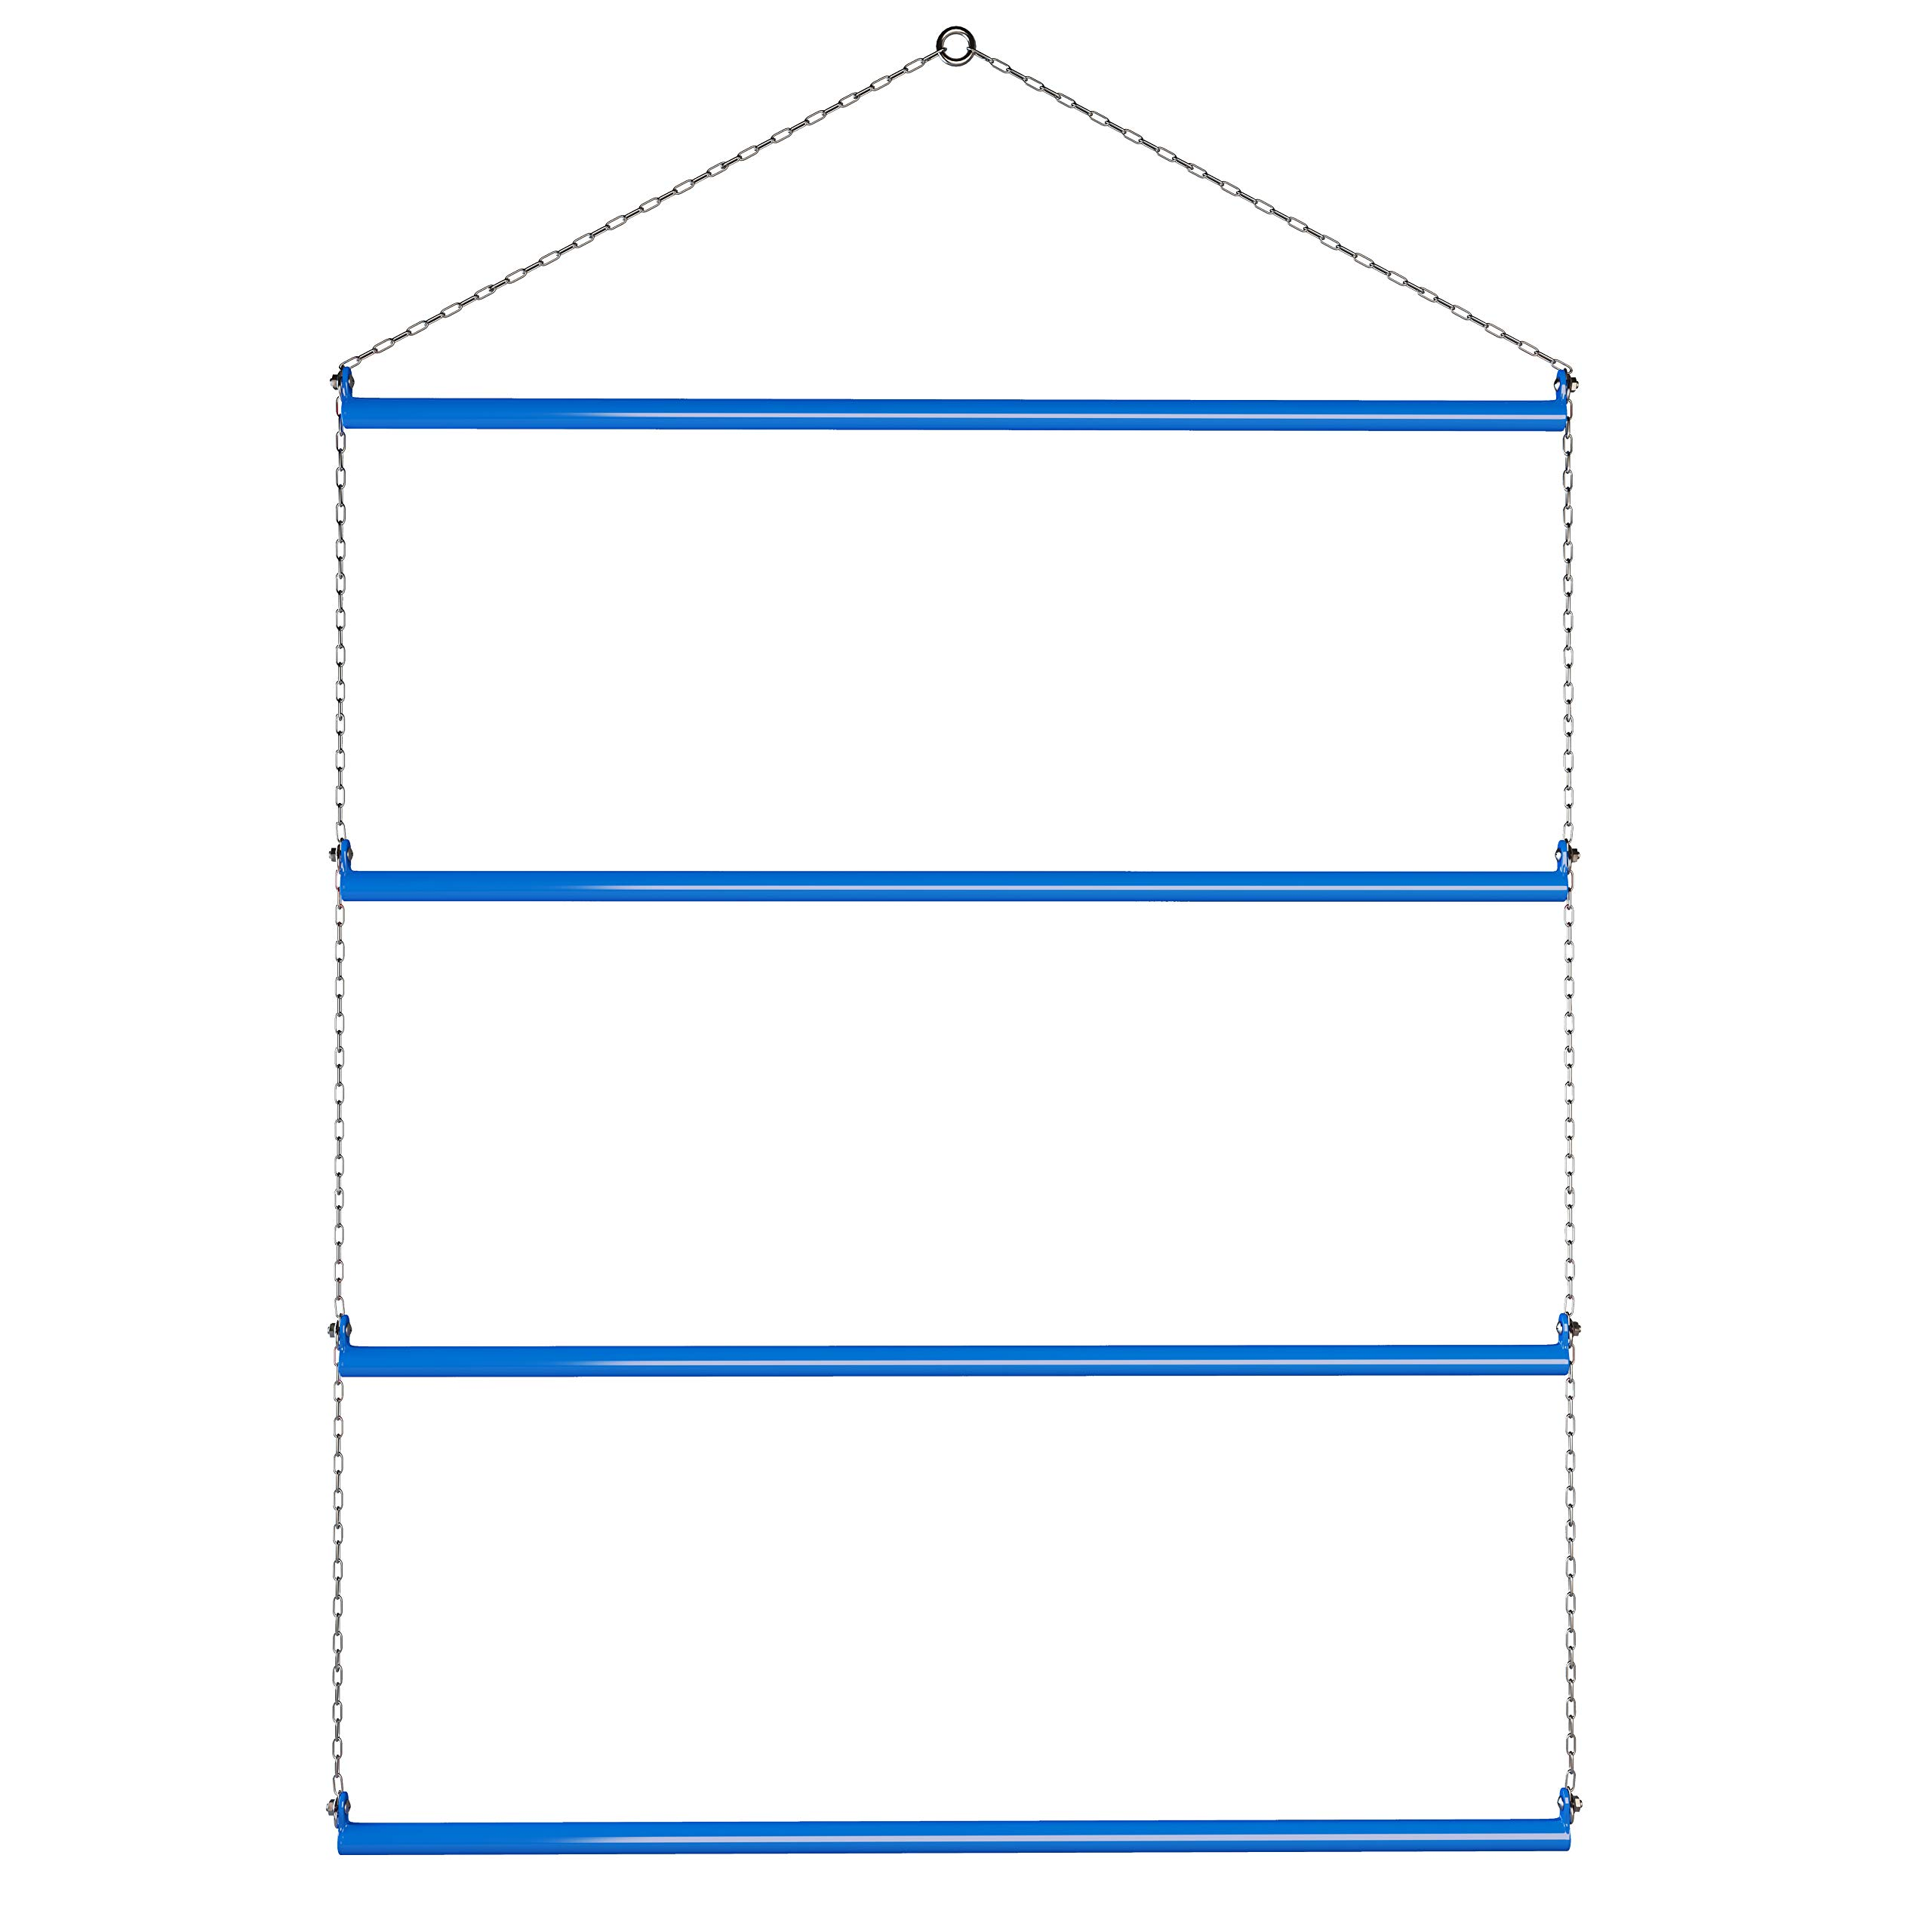 Blanket Rack 33'' (Blue). Available in Black, Blue, Red & Pink. Suitable for Horse Blankets, Saddle Blankets, Rugs & Towels. Extra Long for Western Saddle Blankets and Horse Blankets. by Echo Beach Equestrian